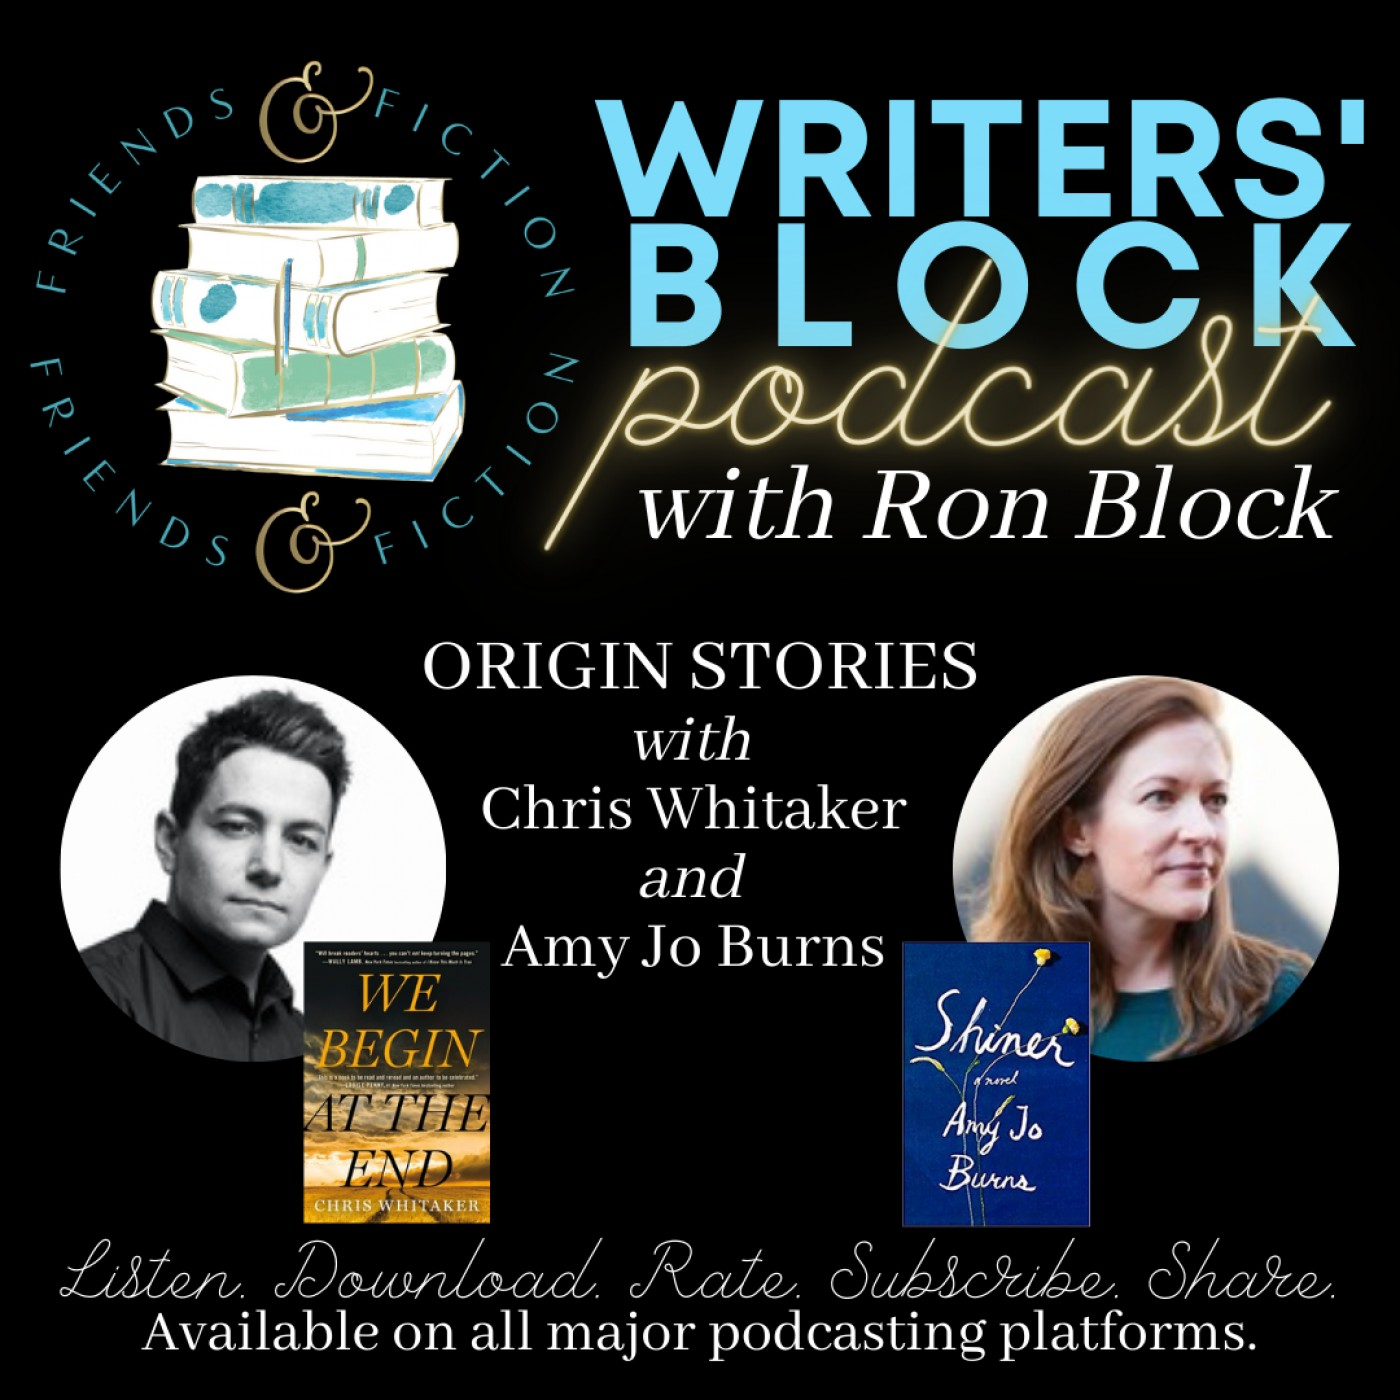 WB S1E3: Ron Block and Patti Callahan- Origin Stories with Chris Whitaker and Amy Jo Burns